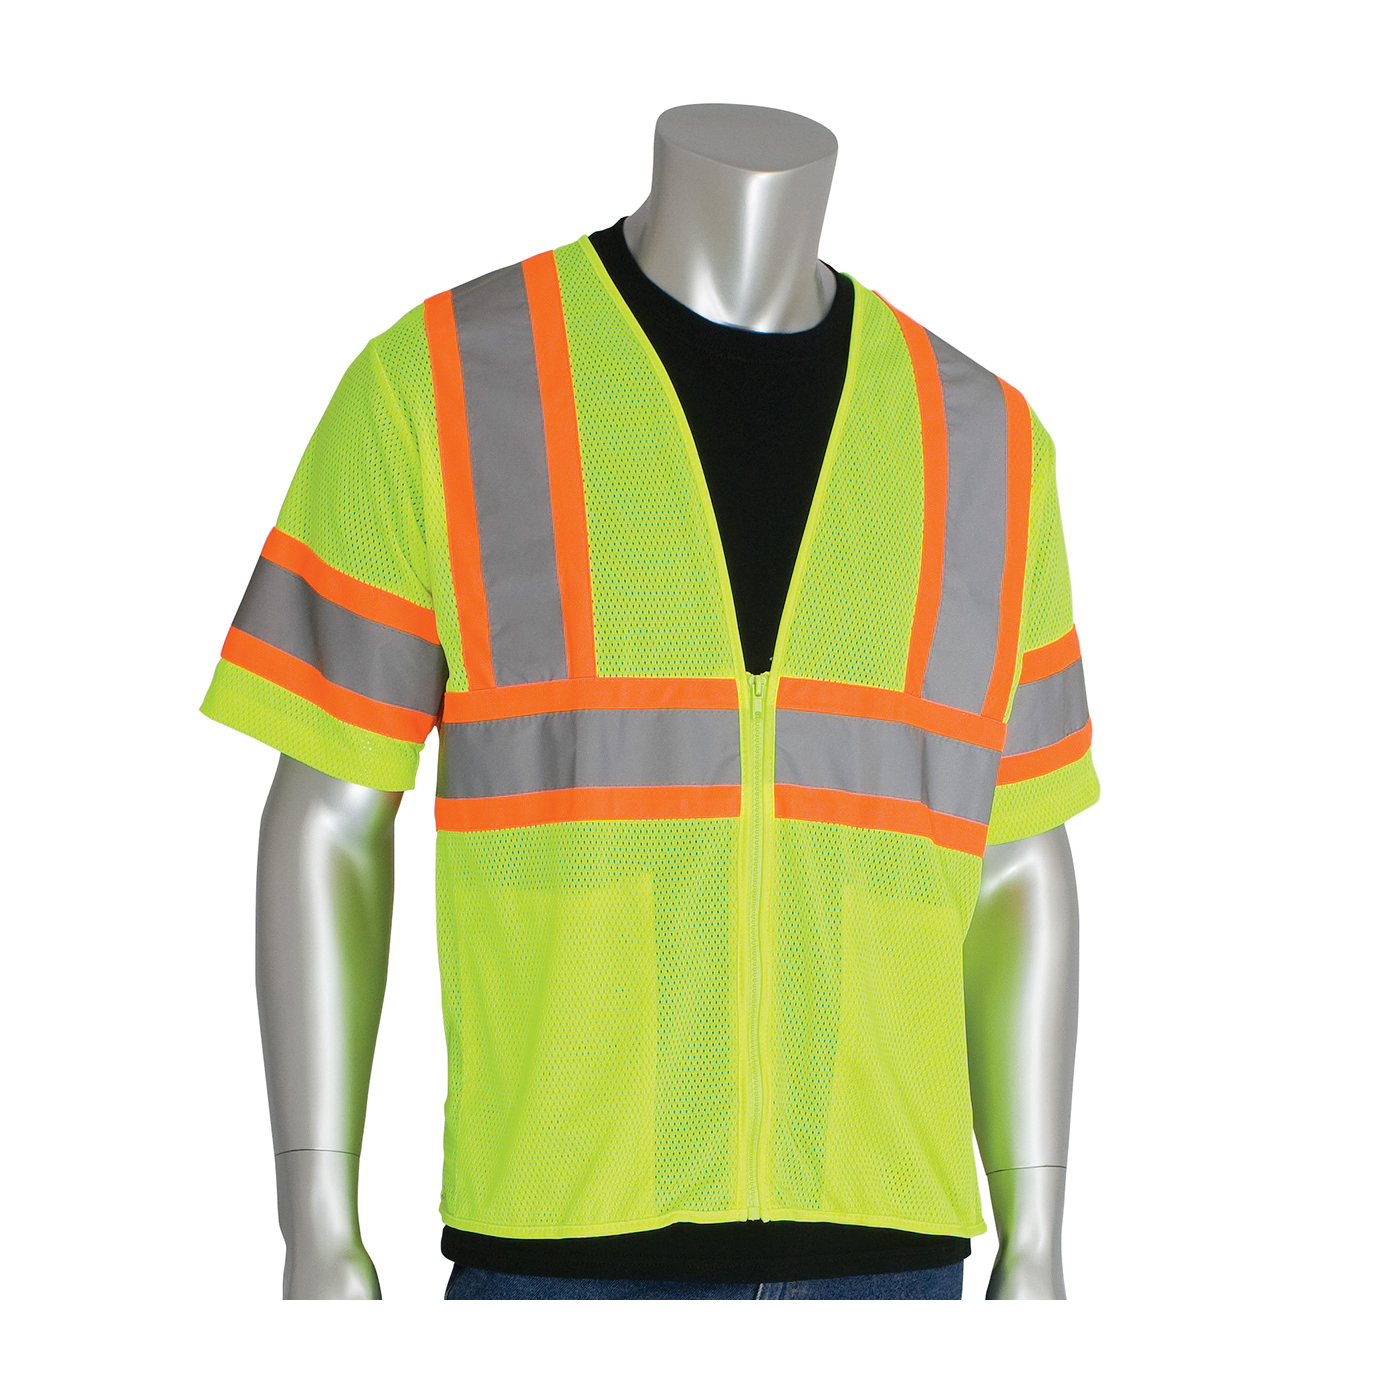 PIP® 303-HSVPLY- 2-Tone Safety Vest, Hi-Viz Lime Yellow, Polyester Mesh, Zipper Closure, 2 Pockets, ANSI Class: Class 3, Specifications Met: ANSI 107 Type R